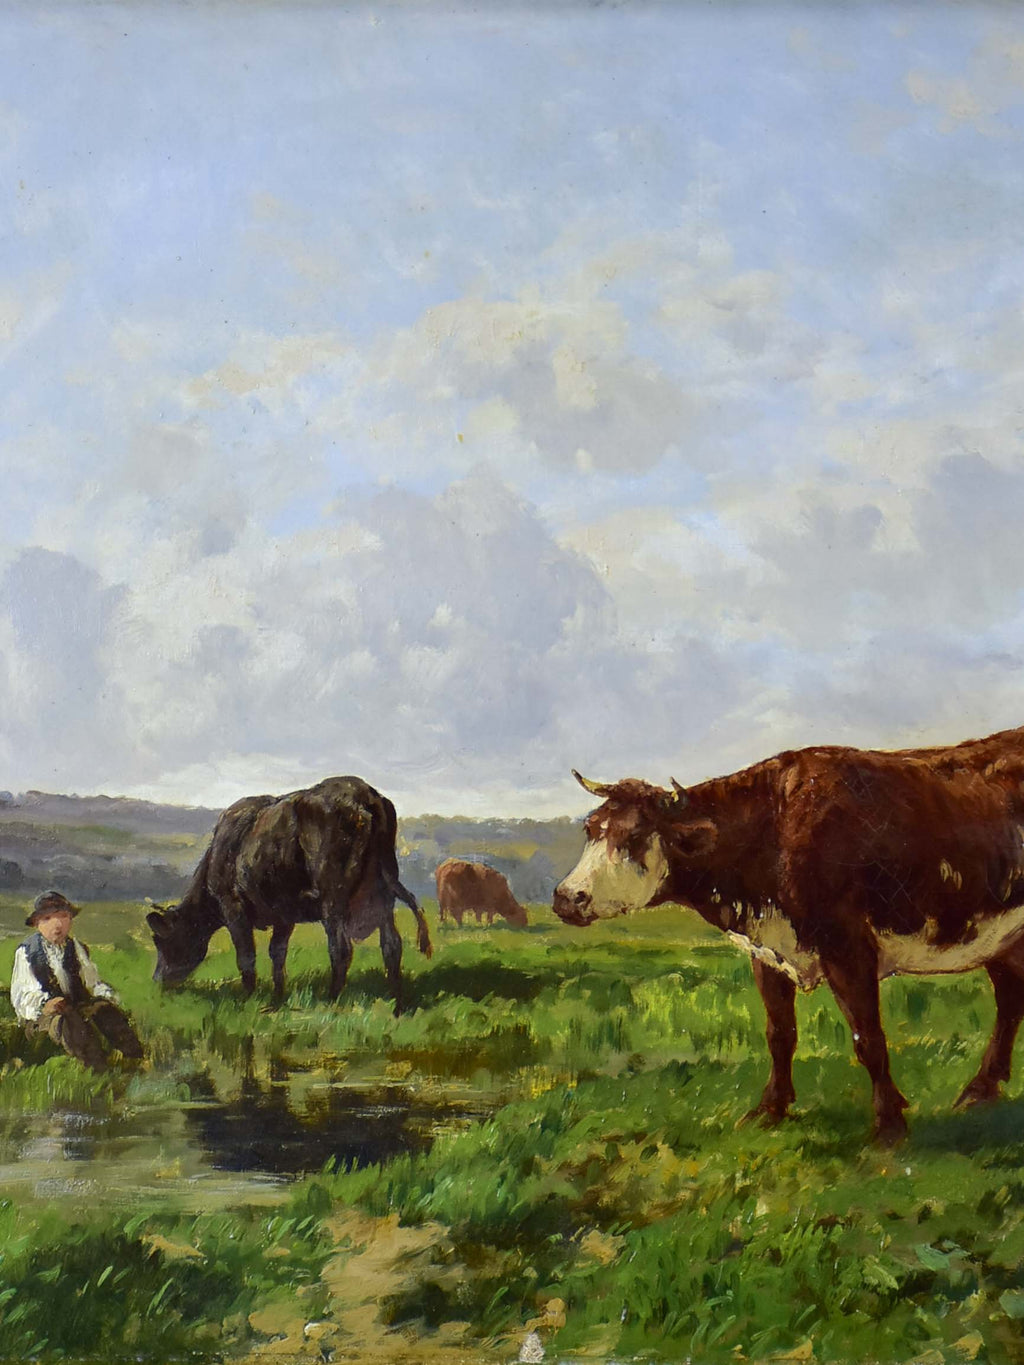 Painting of cows in a field, Ecole de Barbizon, Clement Quinton 34 ¼'' x 29 ½''